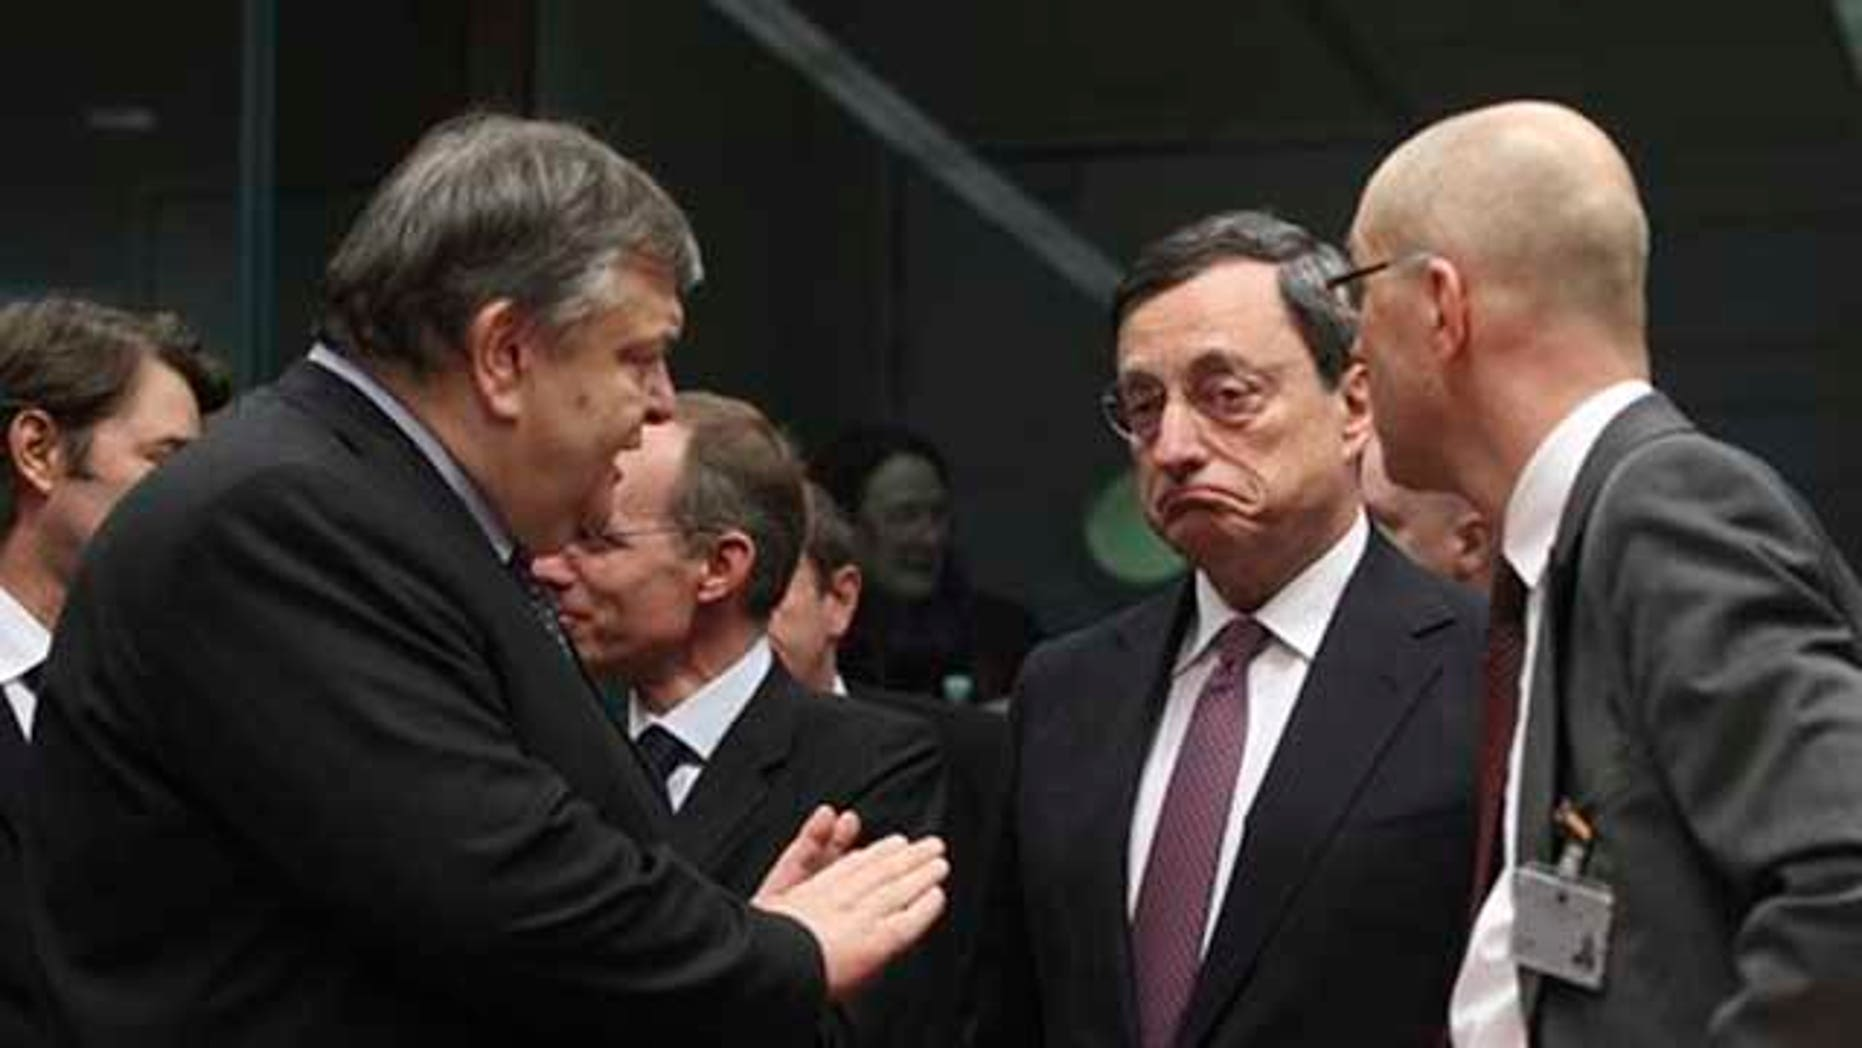 Feb. 20, 2012: Greek Finance Minister Evangelos Venizelos, left, gestures while speaking with European Central Bank President Mario Draghi, second right, during a round table meeting of eurozone finance ministers at the EU Council building in Brussels.